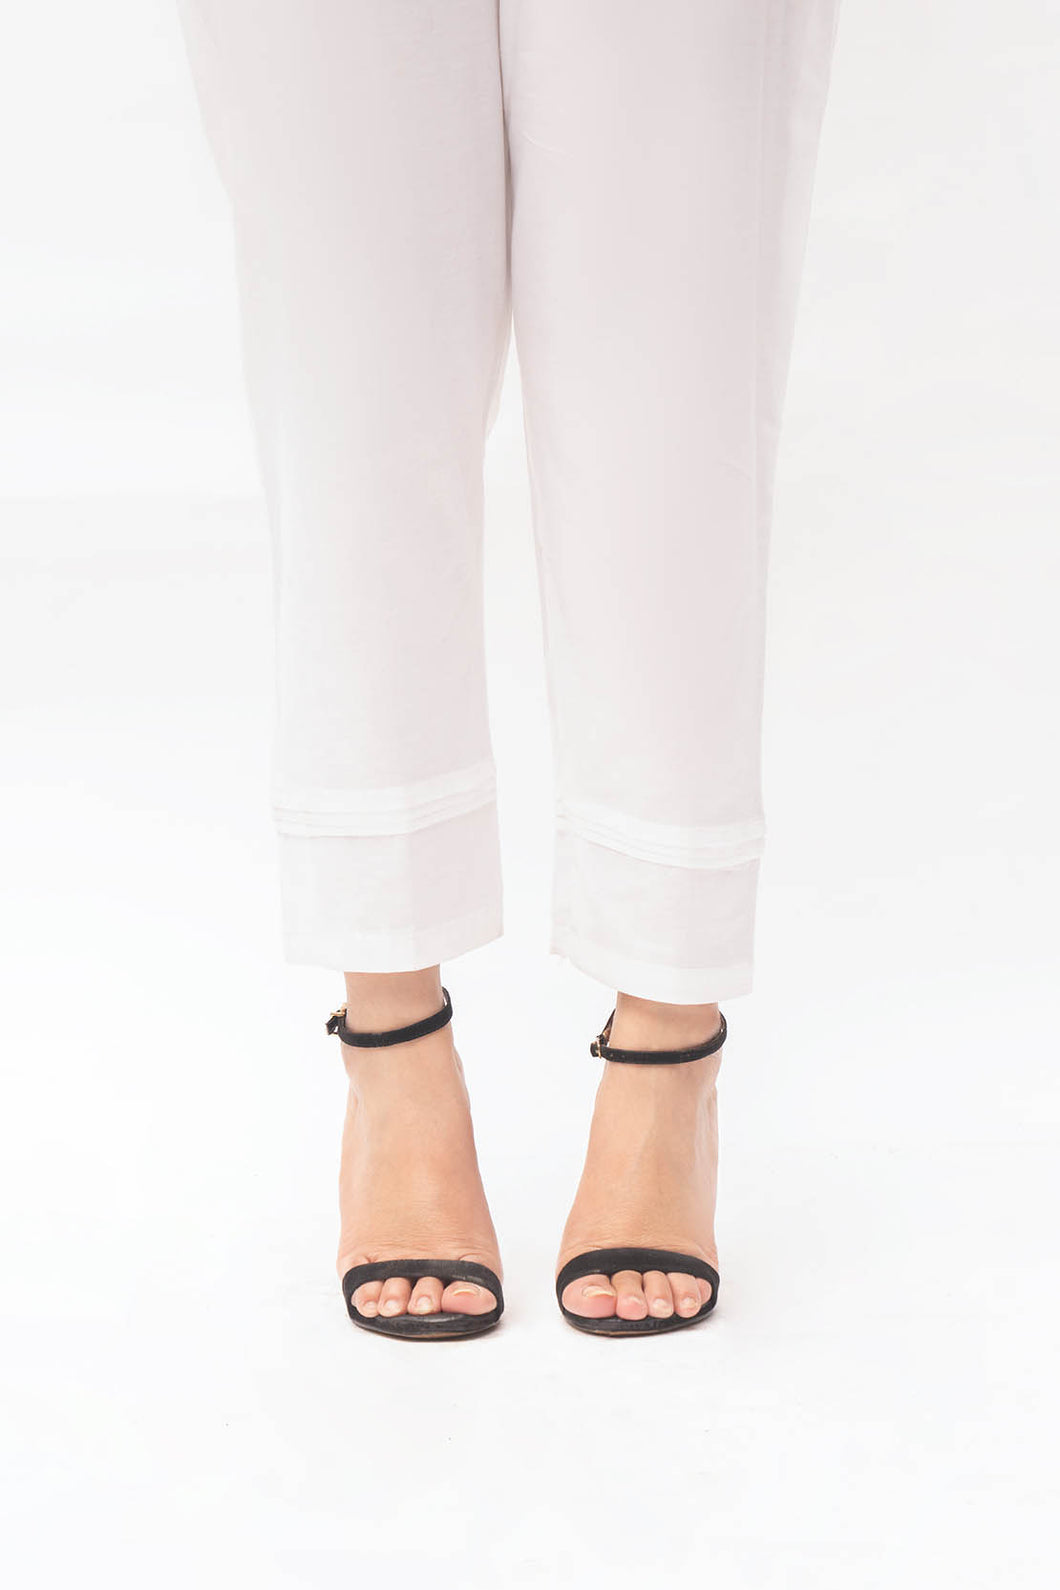 T-98 ST. Pant Press Pleats